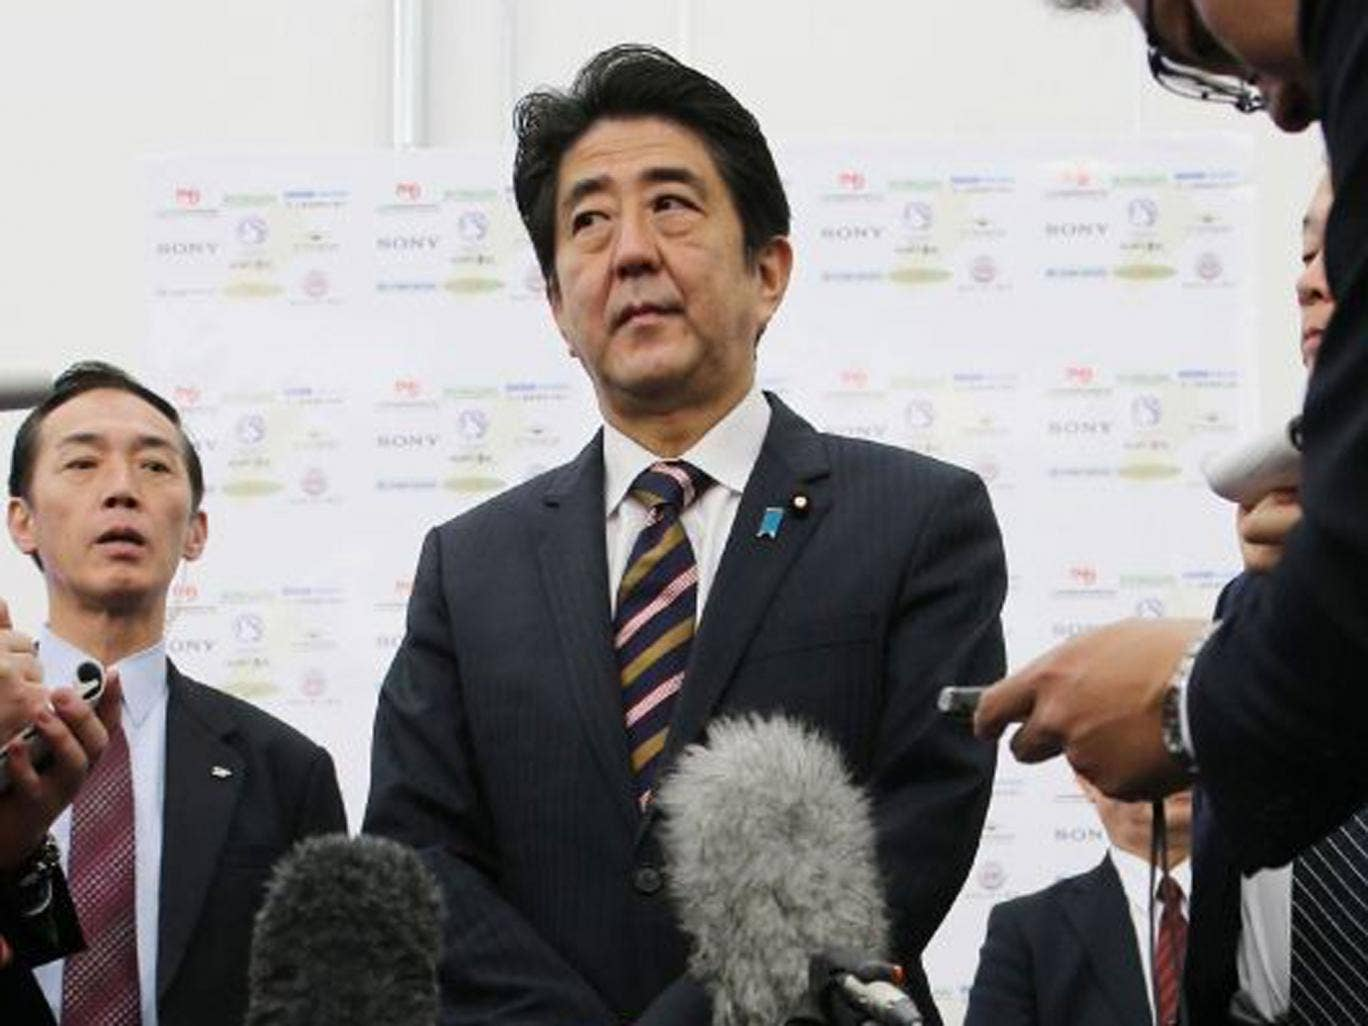 Japan Prime Minister Shinzo Abe feels Japan has addressed its past